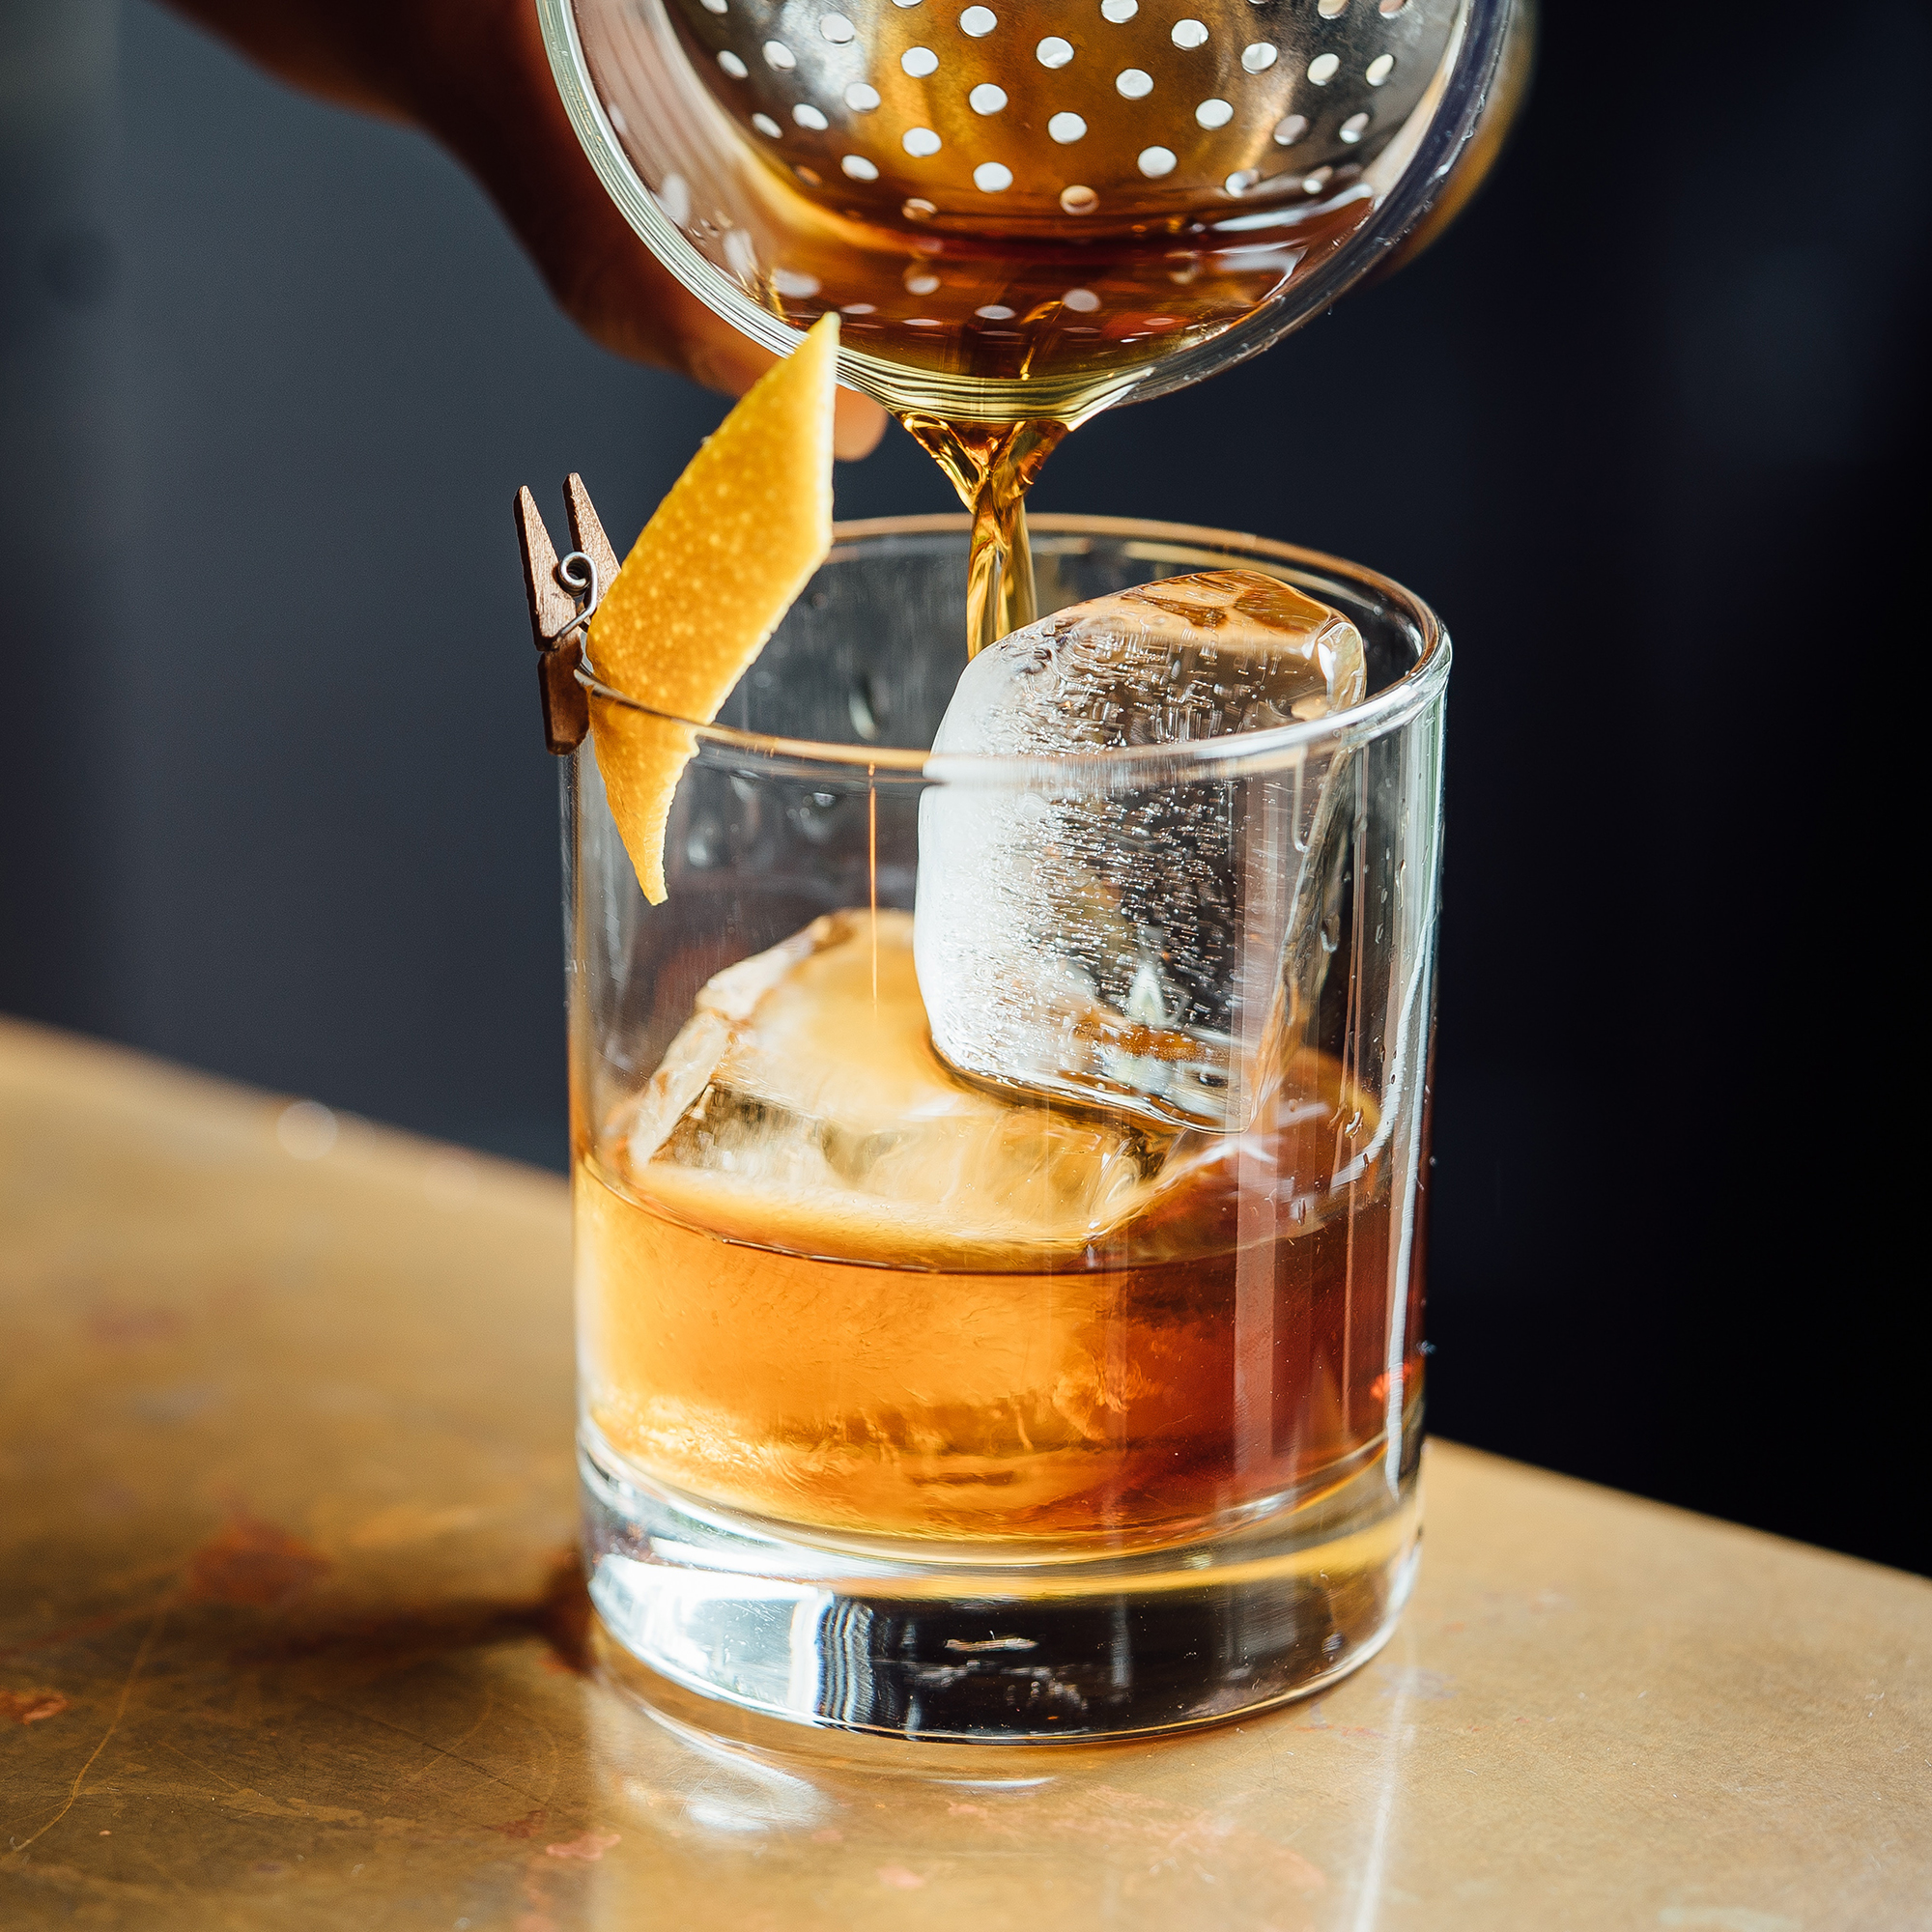 WHISKEY LOVERs,REJOICE! - We have just the drink for you!